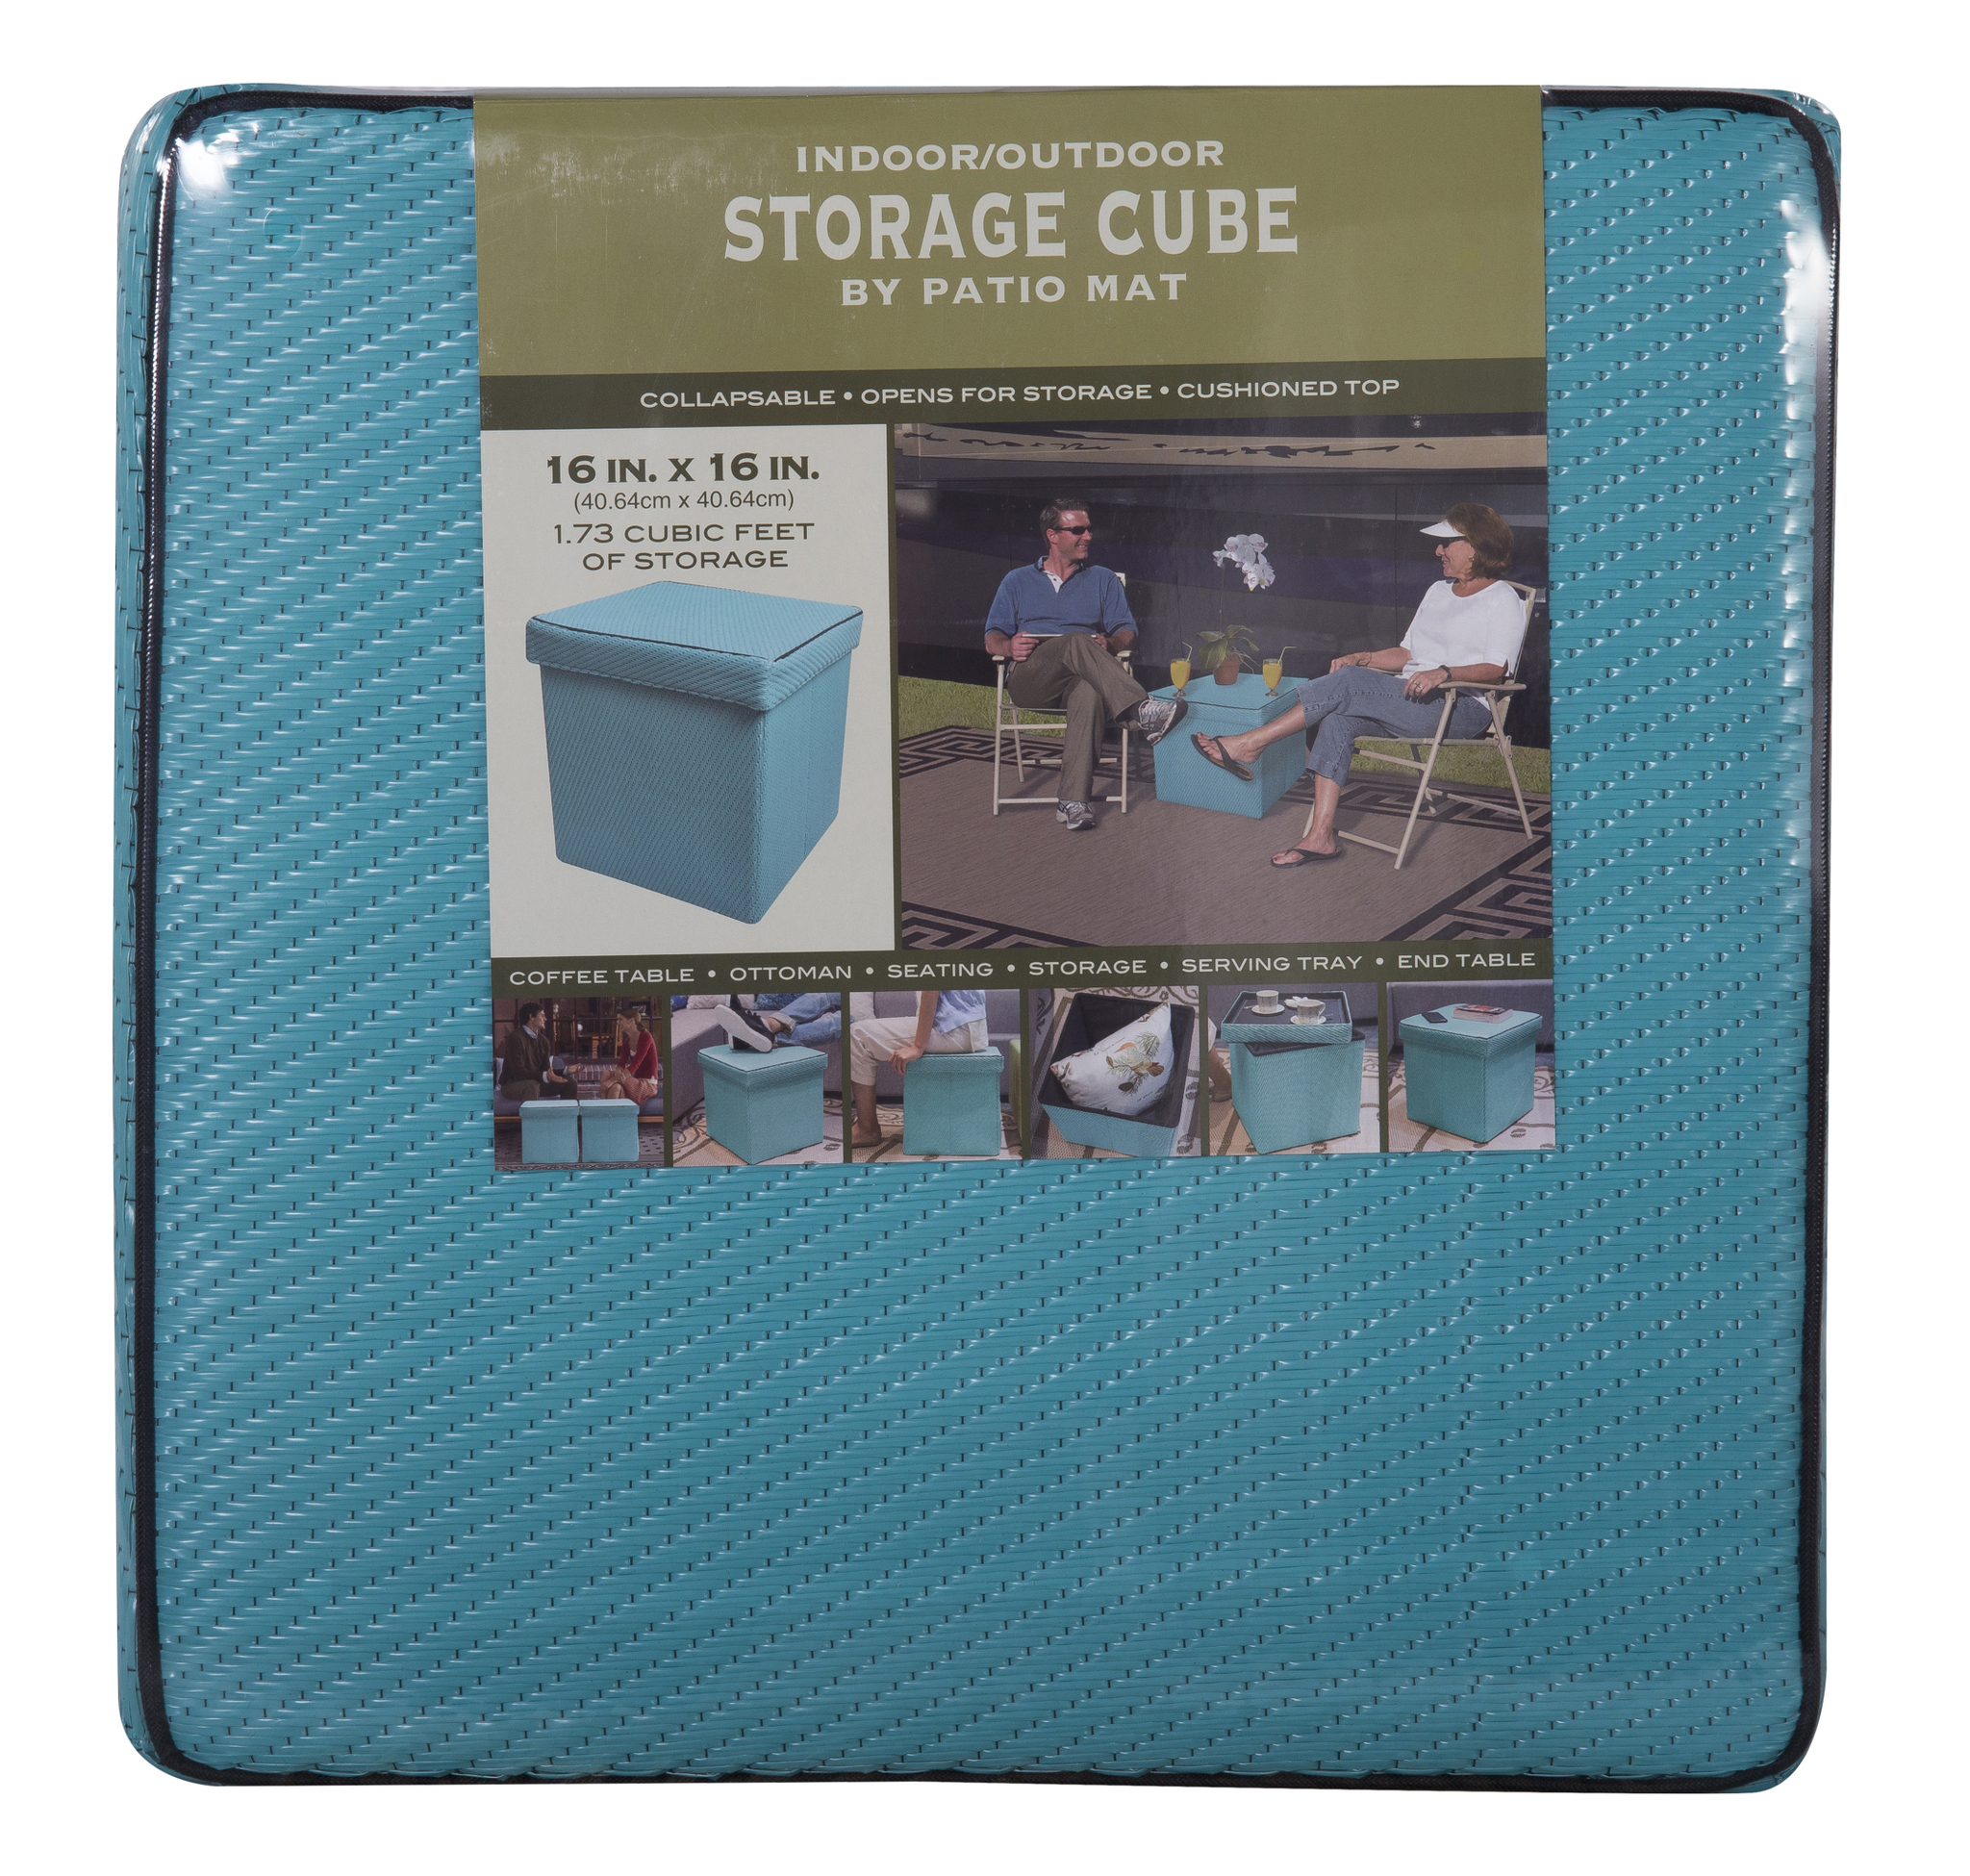 Storage Cube By Patio Mat, Indoor / Outdoor For RV, Patio, Home,  Collapsible U0026 Multi Use   Walmart.com